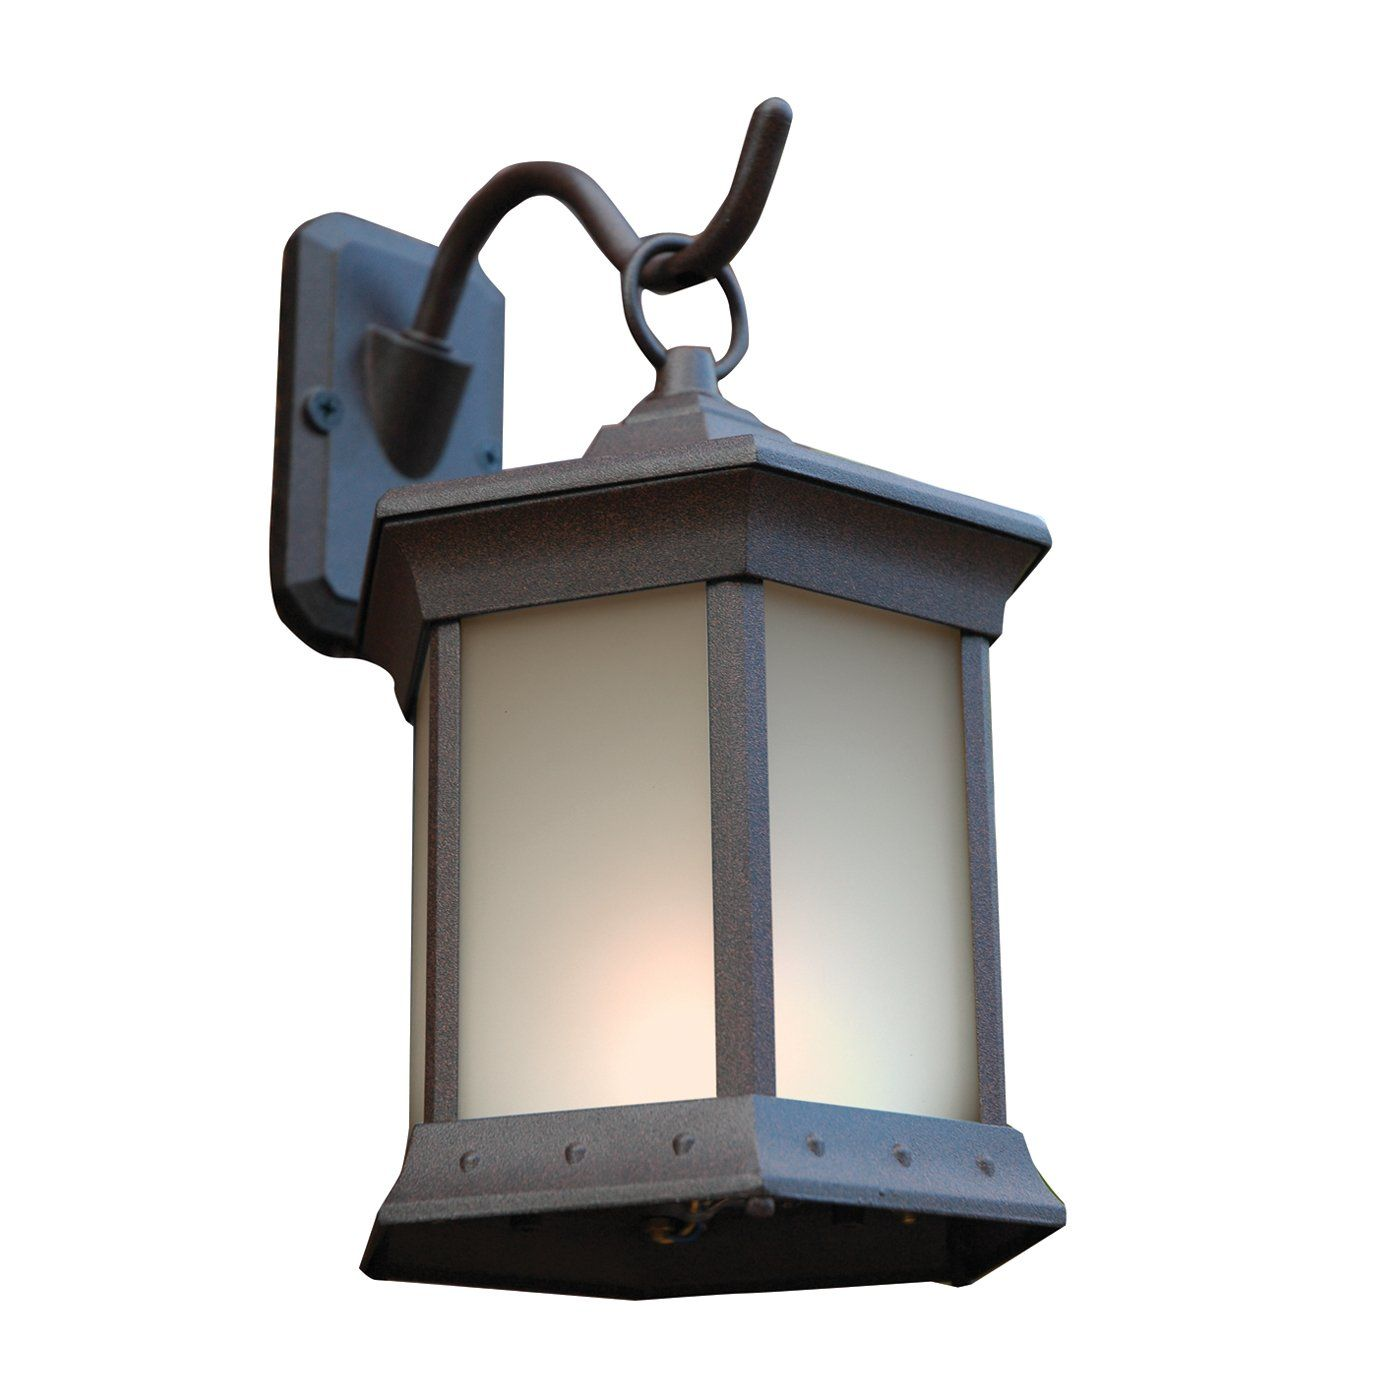 Outdoor Light Kit Shop outdoor greatroom company solar 2 wall mounting solar light kit shop outdoor greatroom company solar 2 wall mounting solar light kit at the mine browse our outdoor sconces all with free shipping and best price workwithnaturefo